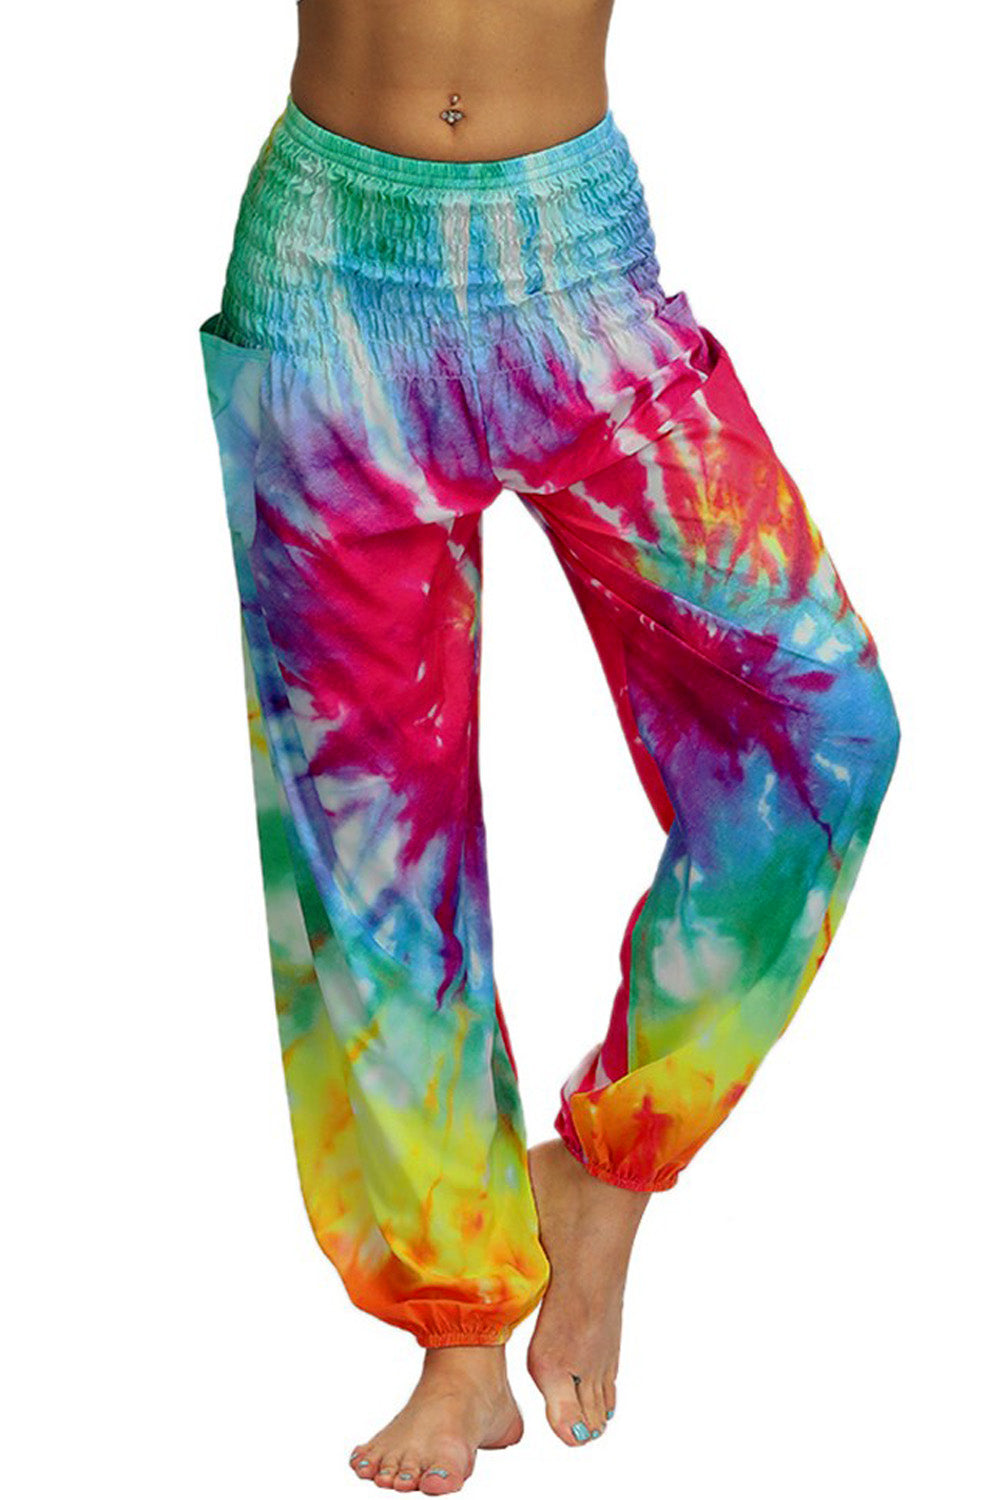 Multicolor Boho Tie-dye Casual Loose Hippy Harem Pants Pants & Culotte Discount Designer Fashion Clothes Shoes Bags Women Men Kids Children Black Owned Business